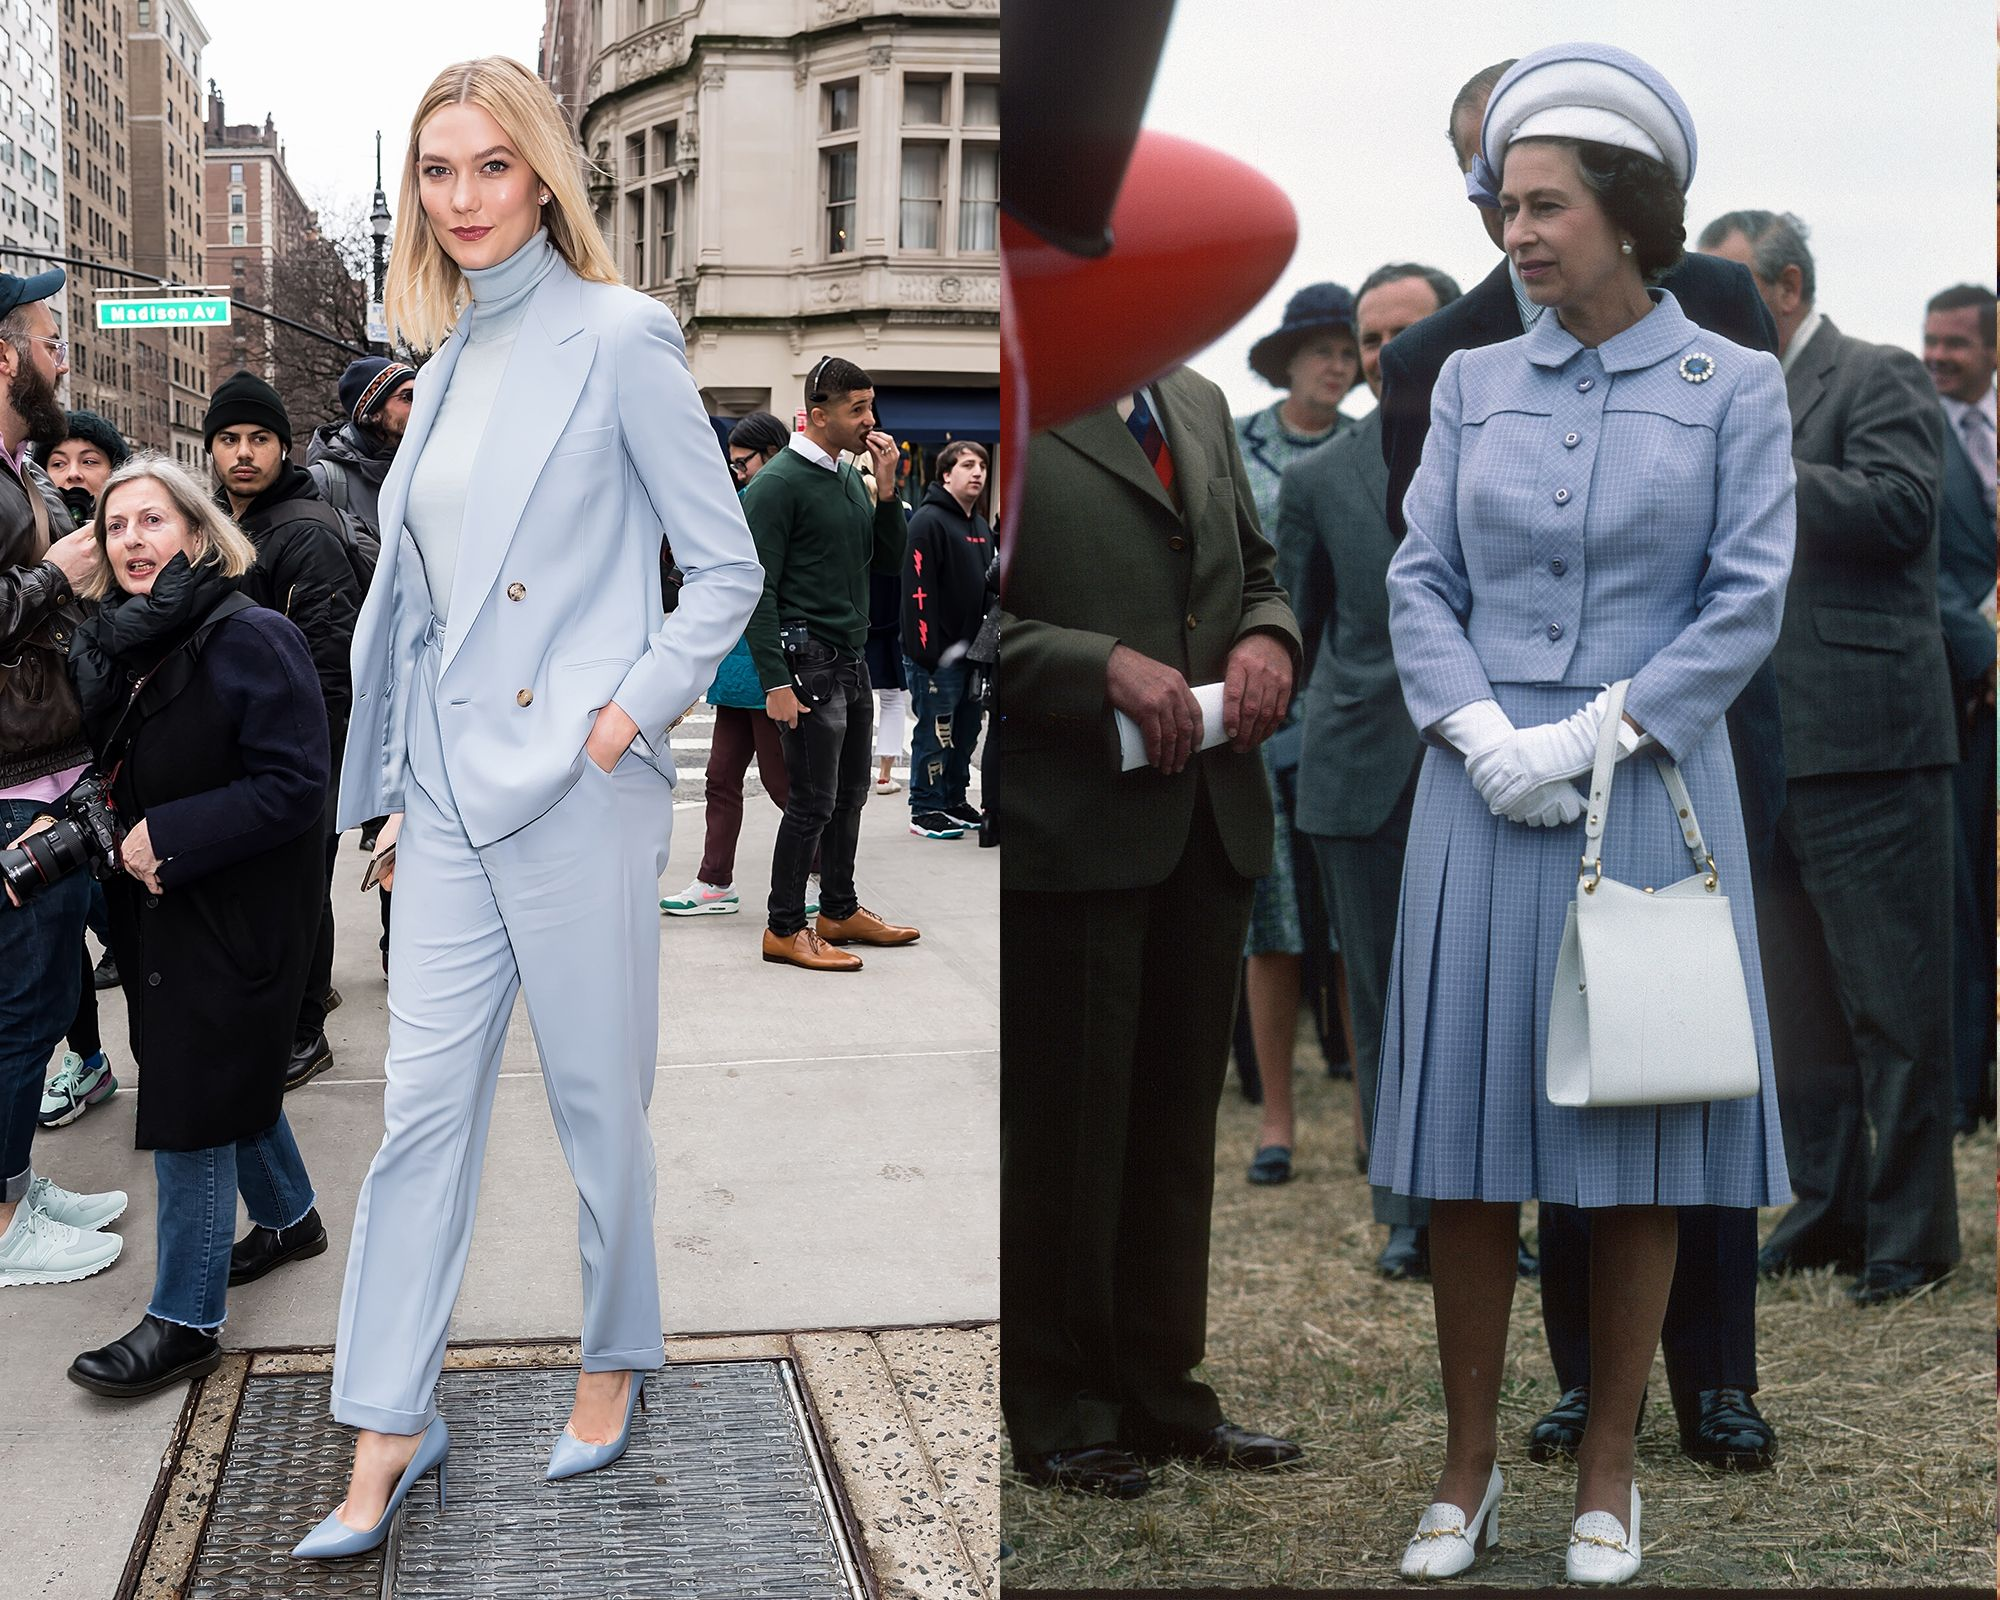 Karlie Kloss vs. the Queen